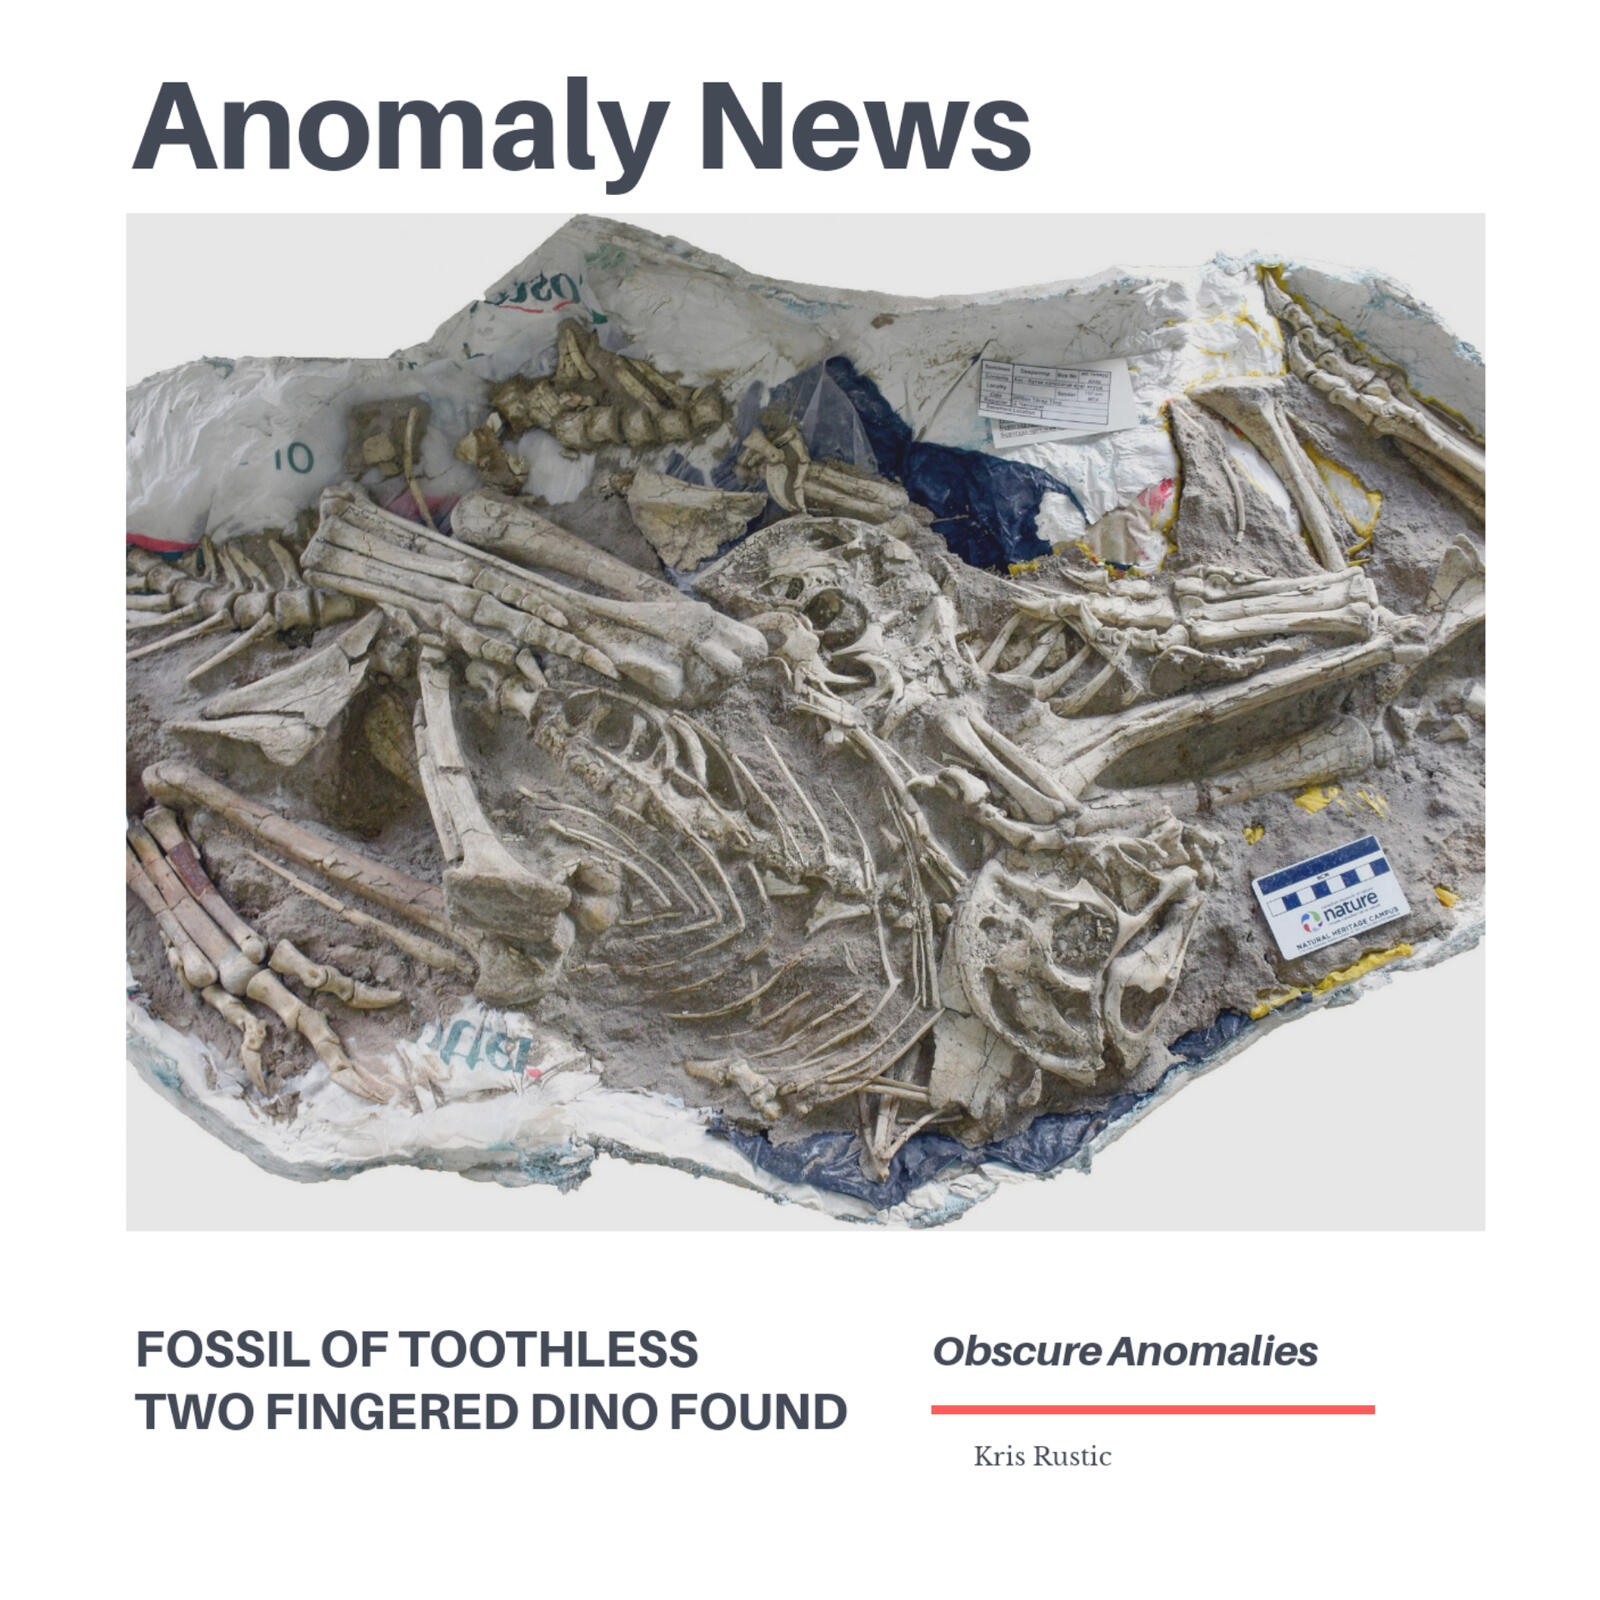 Anomaly News: Fossil of Toothless Two Fingered Dino Found